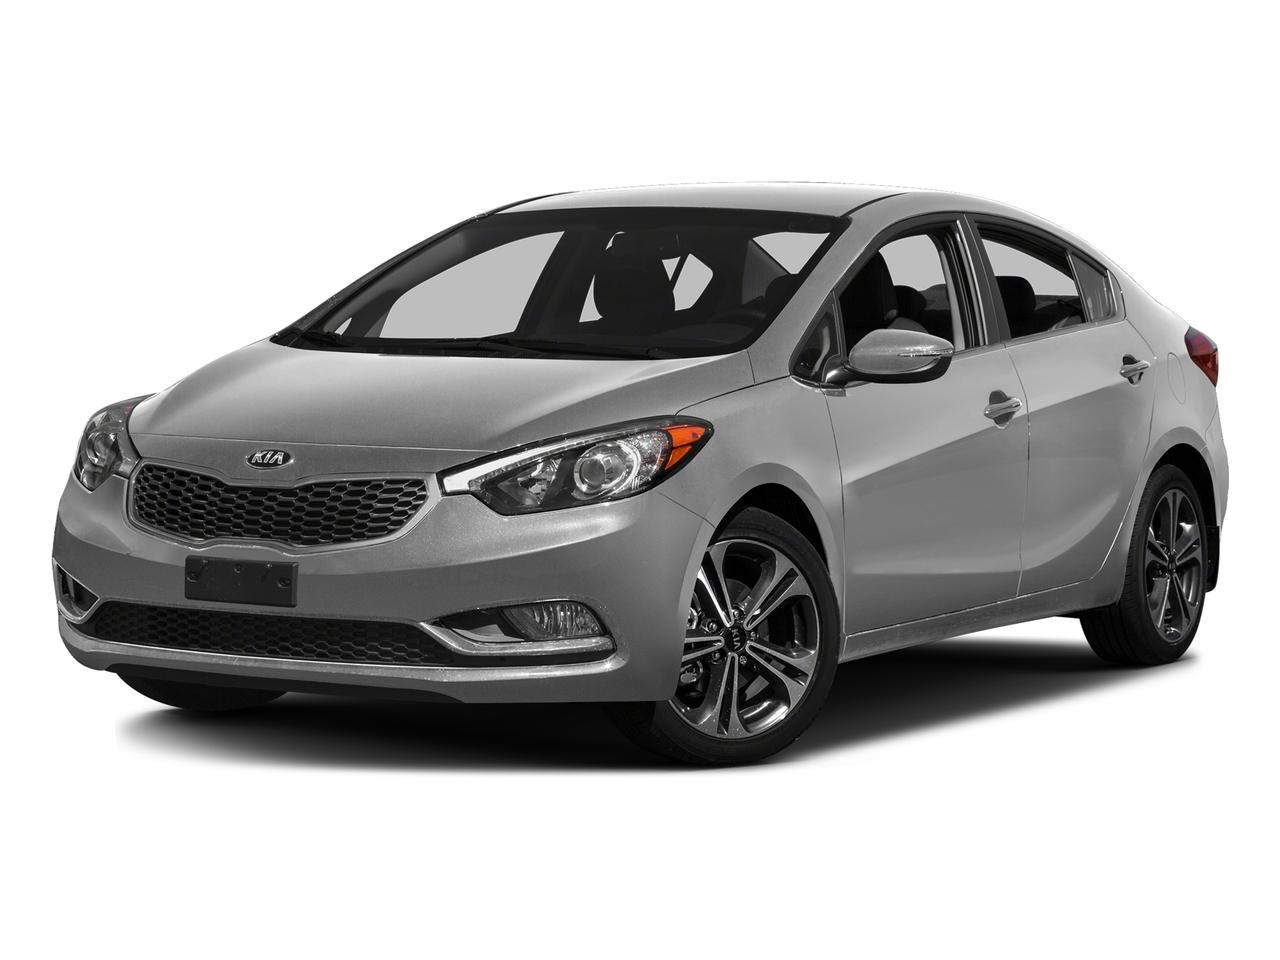 2016 Kia Forte Vehicle Photo in Tucson, AZ 85712